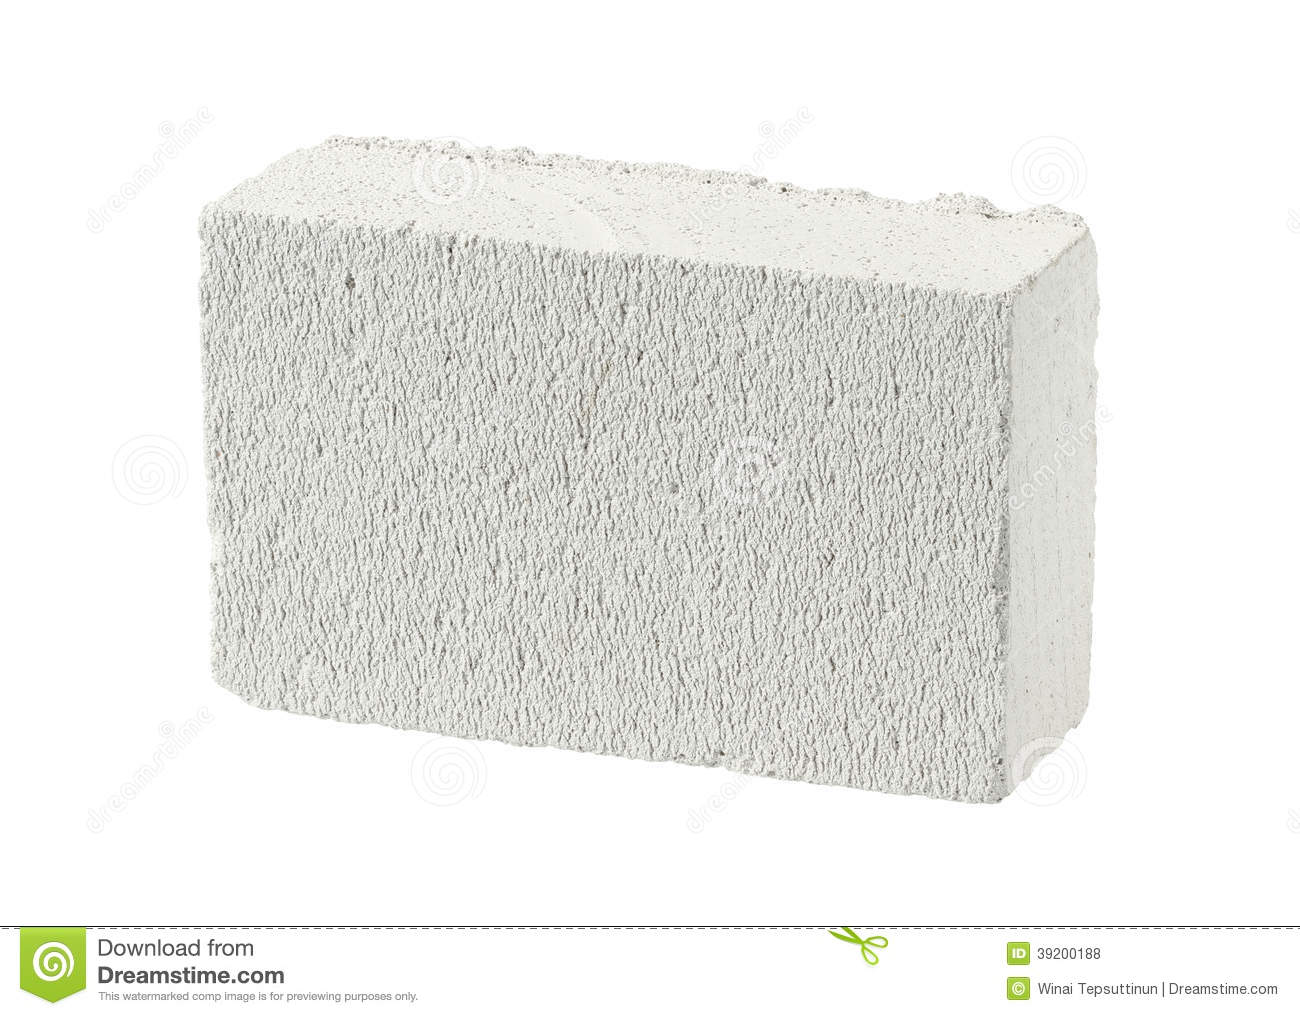 Autoclaved Aerated Concrete Block Stock Photo - Image: 39200188